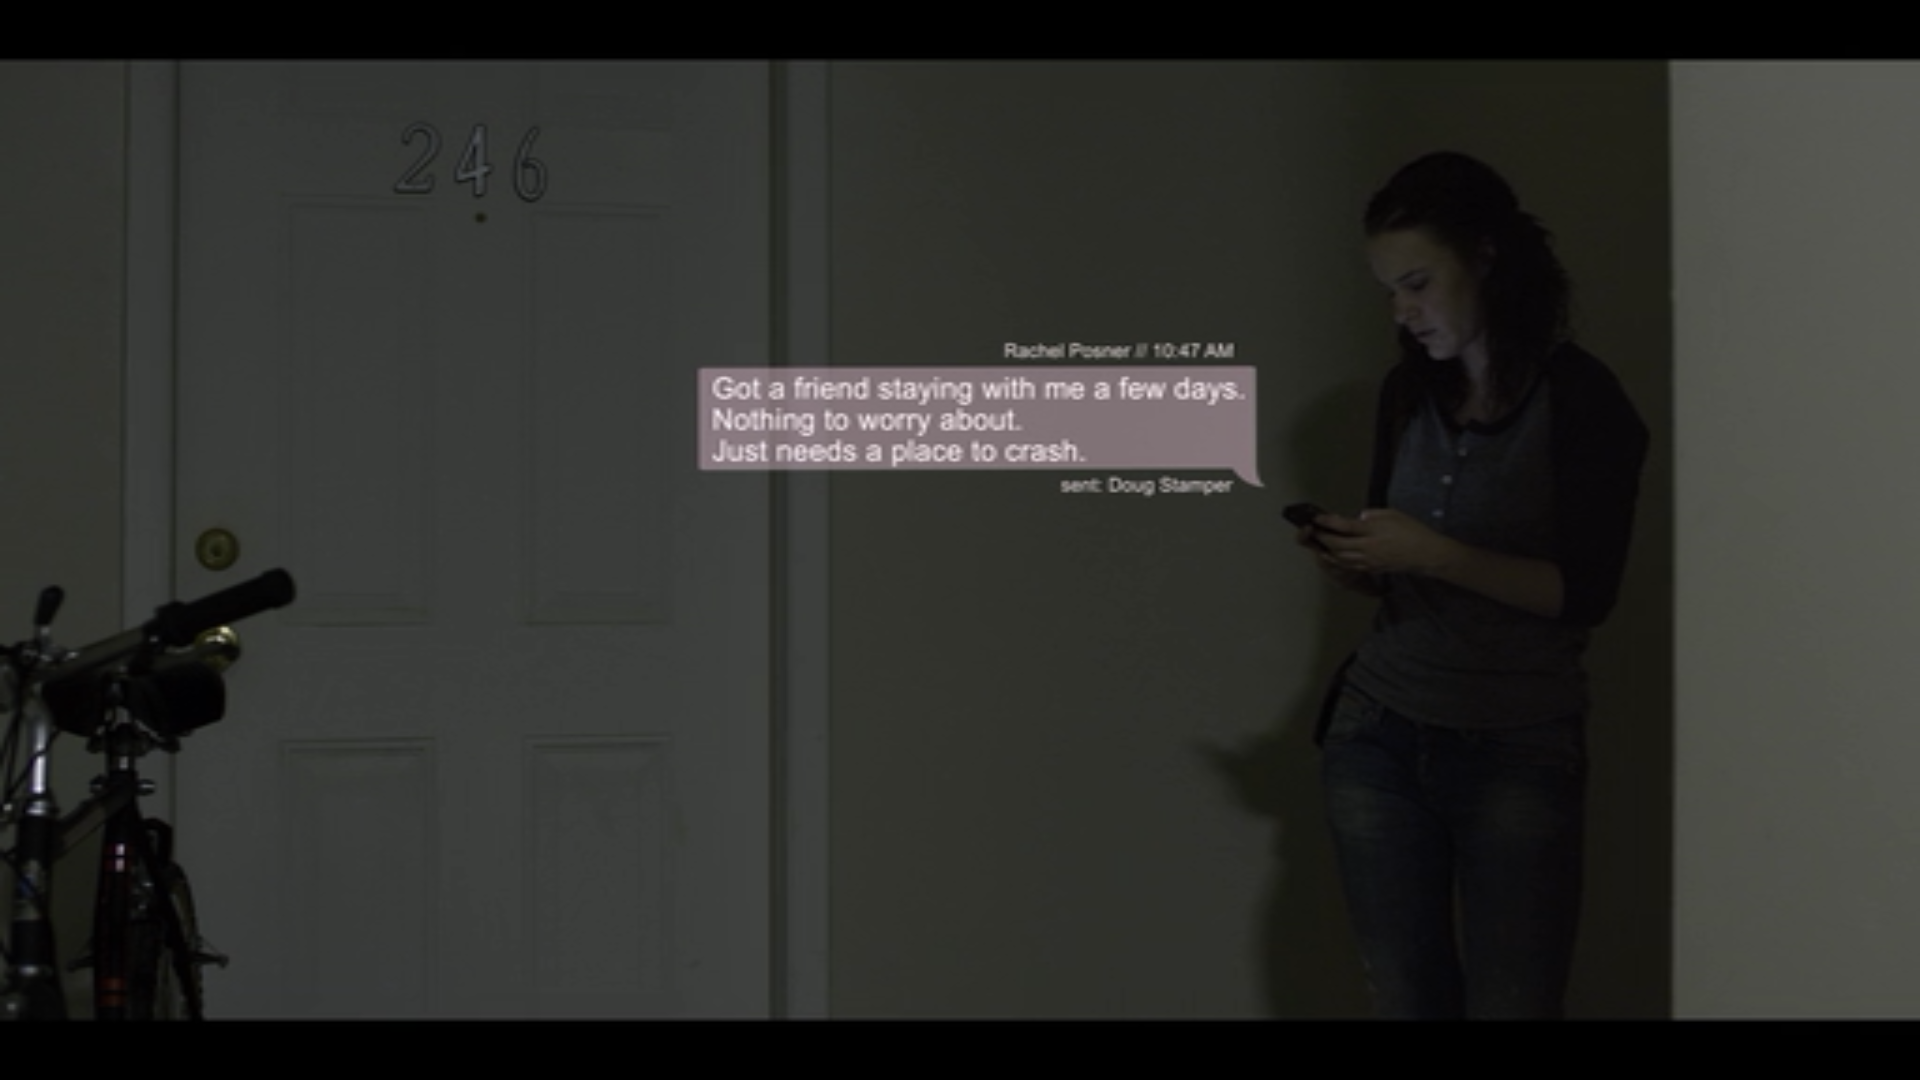 A passive texting event in <em>House of Cards</em>.